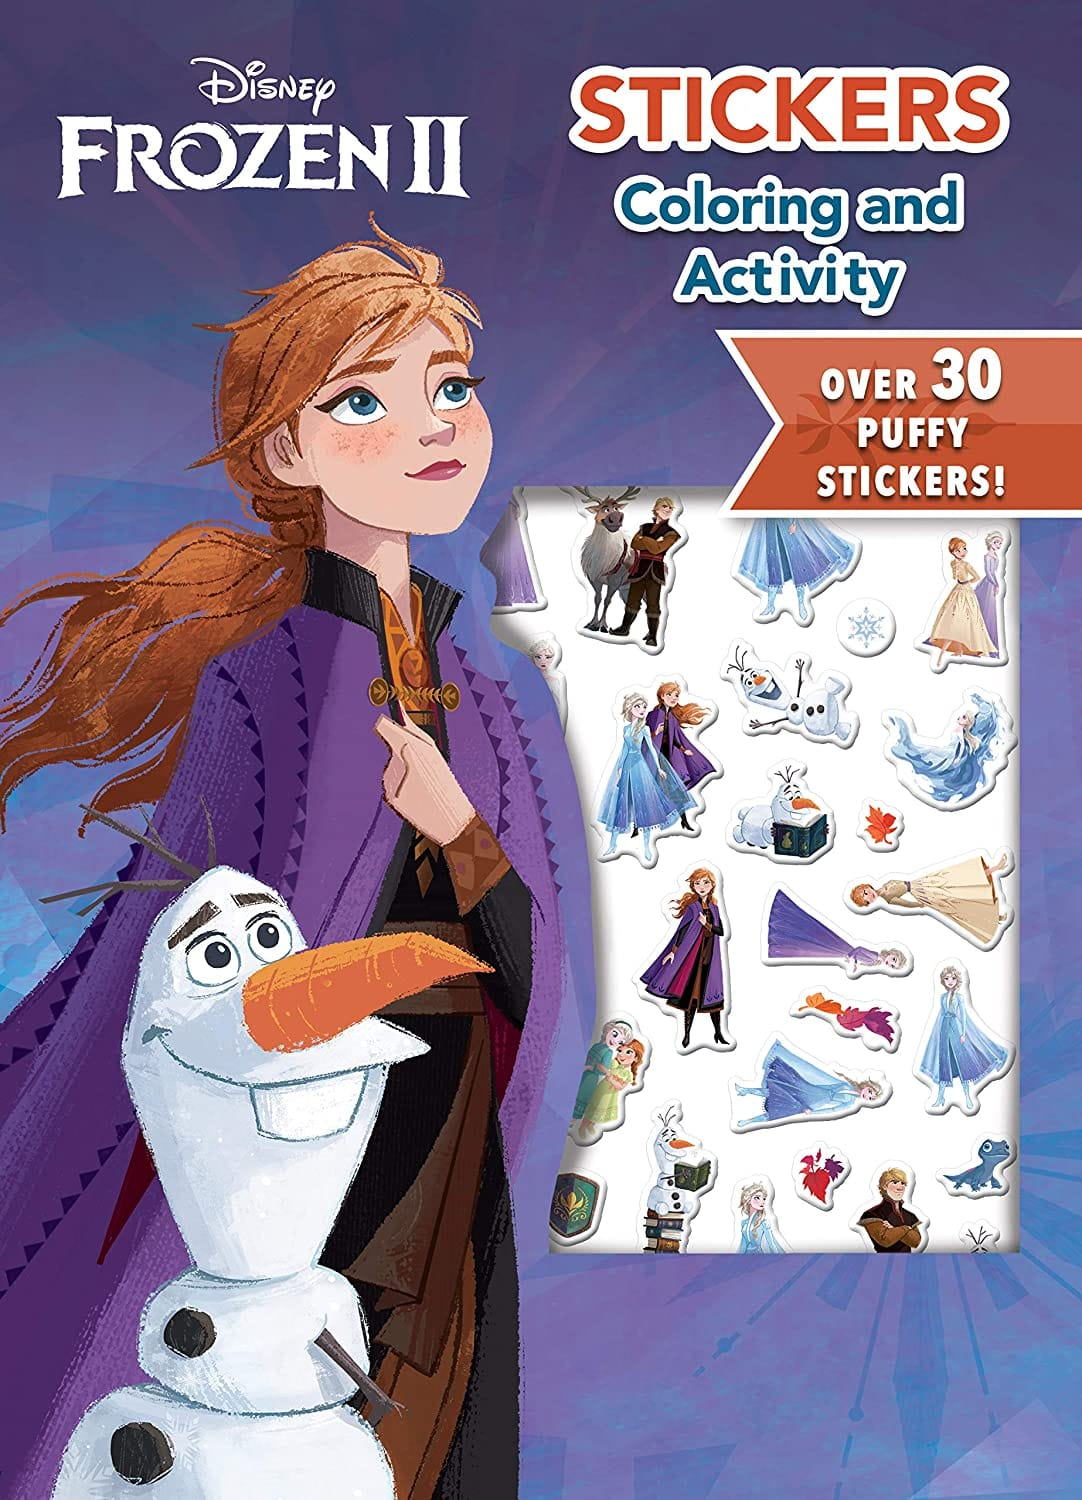 32-Page Disney Frozen 2 Coloring Activity Book w/Puffy Stickers $4.46 - Amazon